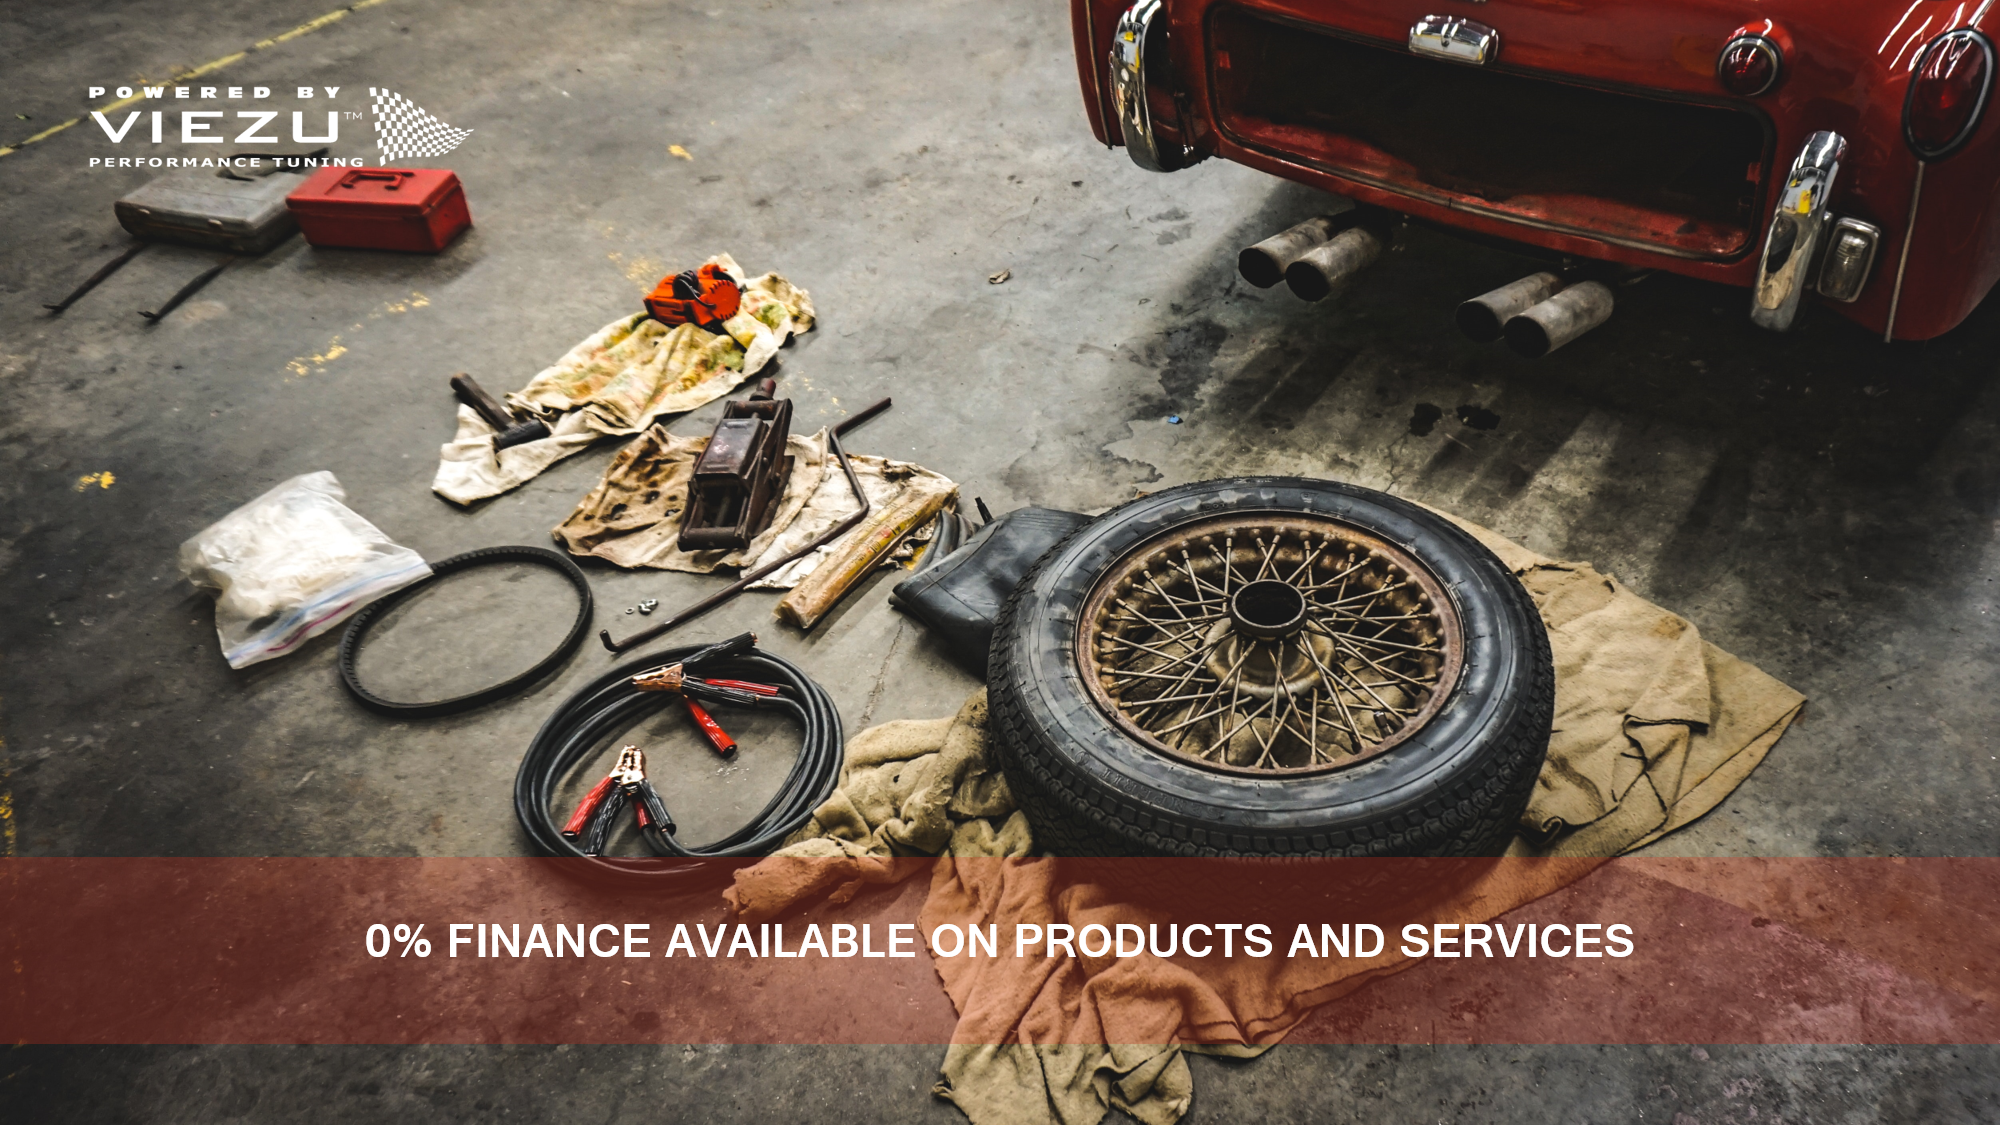 0% Finance Available on Products and Services